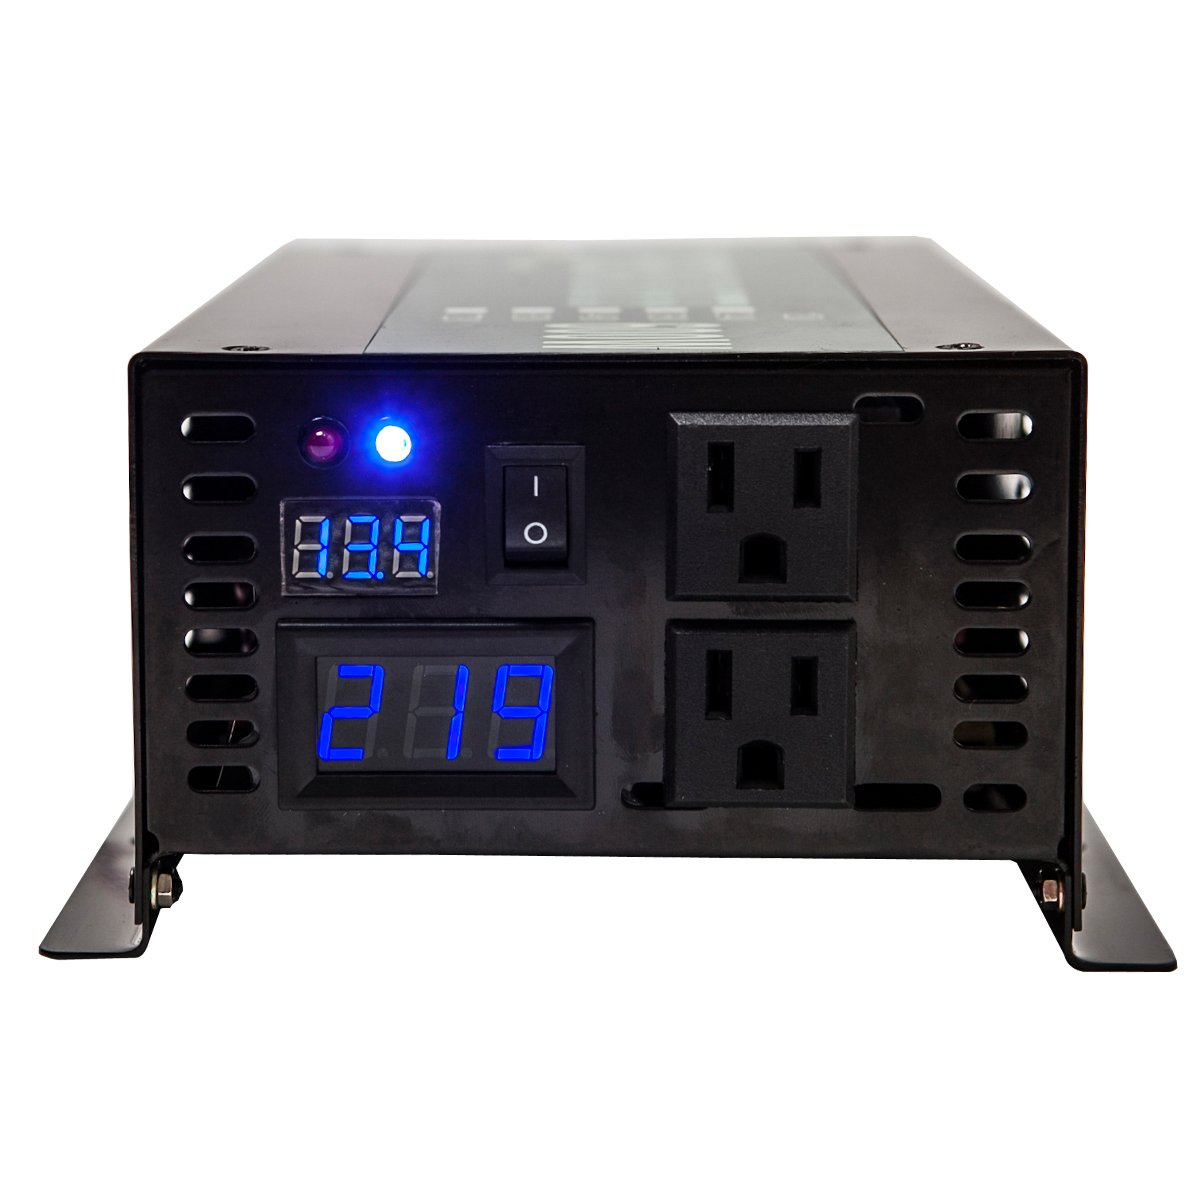 WZRELB Reliable Power Inverter 800w 1600w Peak Pure Sine Wave Inverter 12v 120v 60hz LED Display by WZRELB (Image #5)